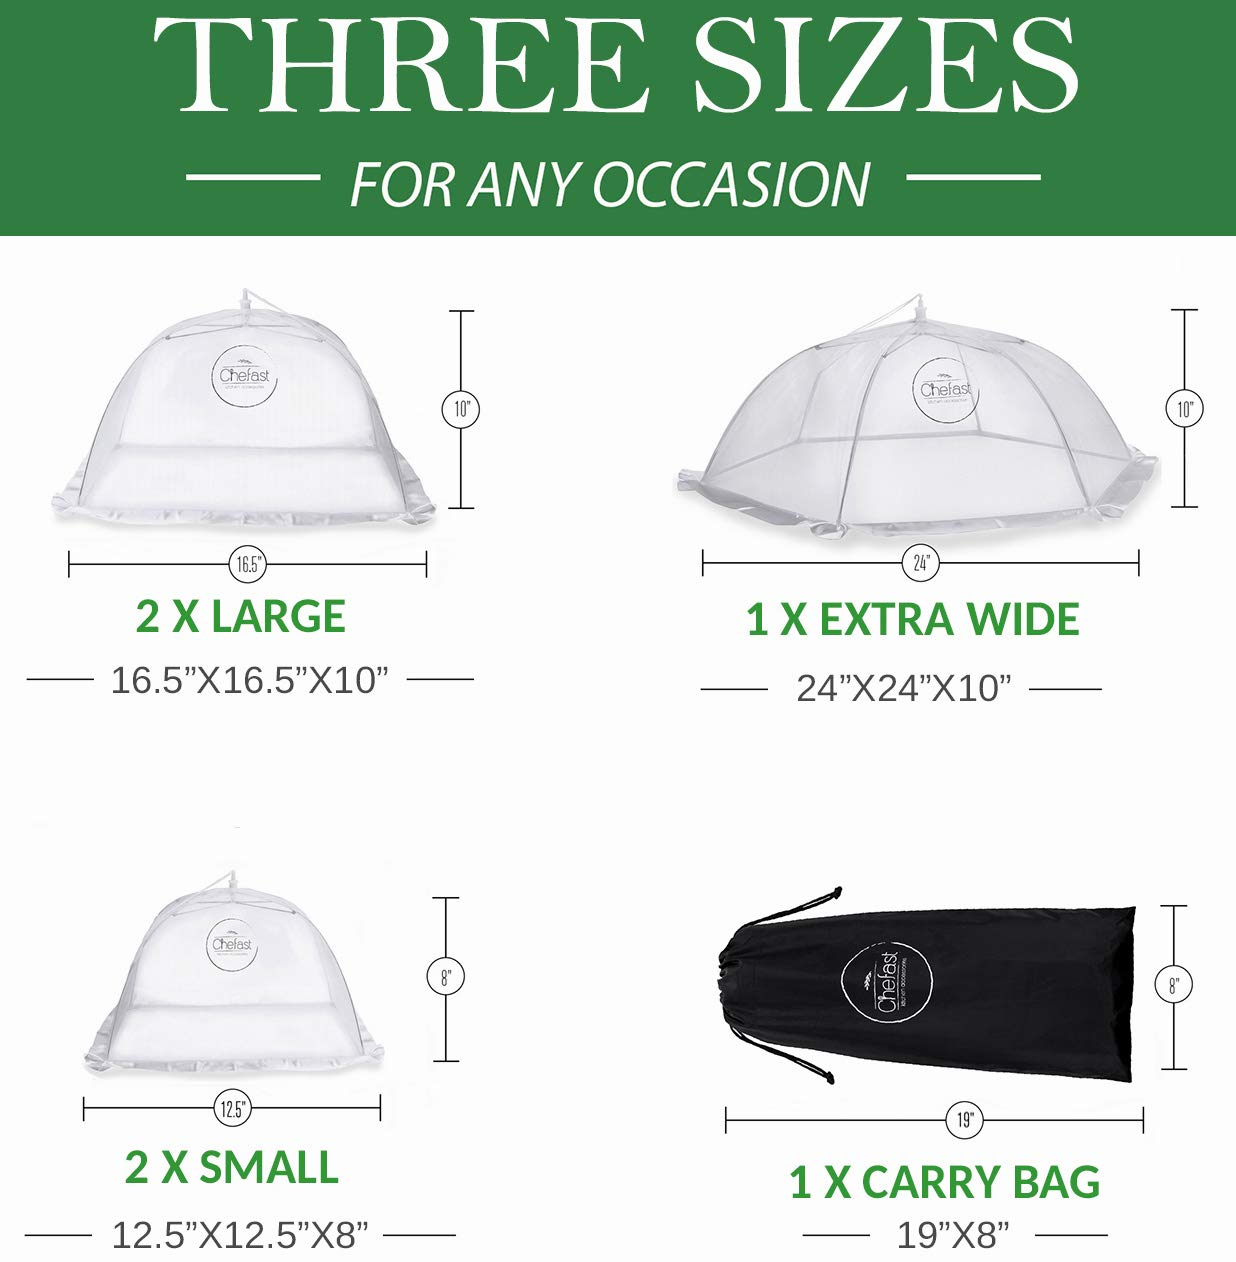 Chefast Food Cover Tents (5 Pack) - Combo Set of Pop Up Mesh Covers in 3 Sizes and a Reusable Carry Bag - Umbrella Screens to Protect Your Food and Fruit from Flies and Bugs at Picnics, BBQ and More by Chefast (Image #2)